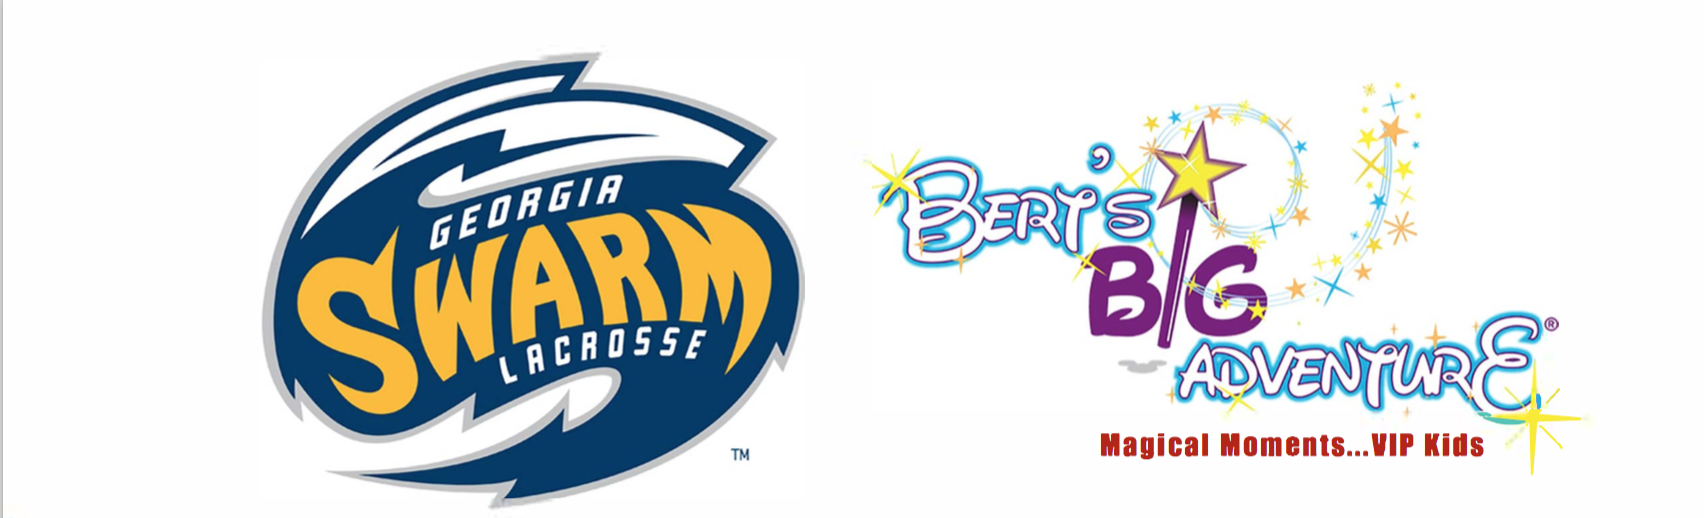 Georgia Swarm Partners with Bert's Big Adventure for 2017 Season